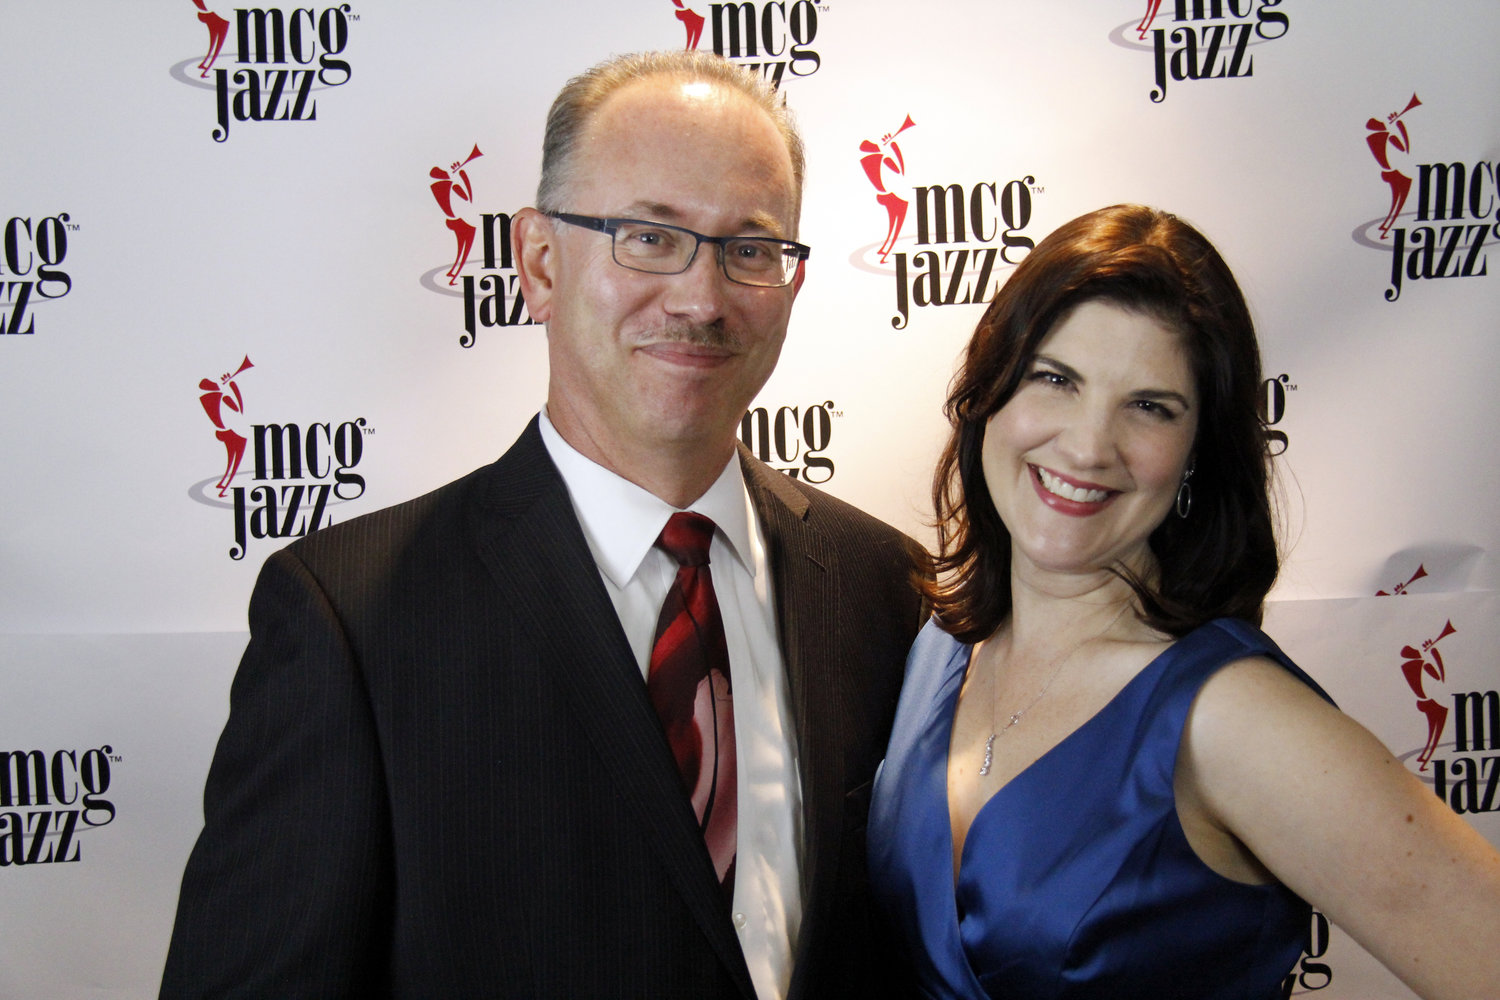 Marty Ashby and Renée Govanucci